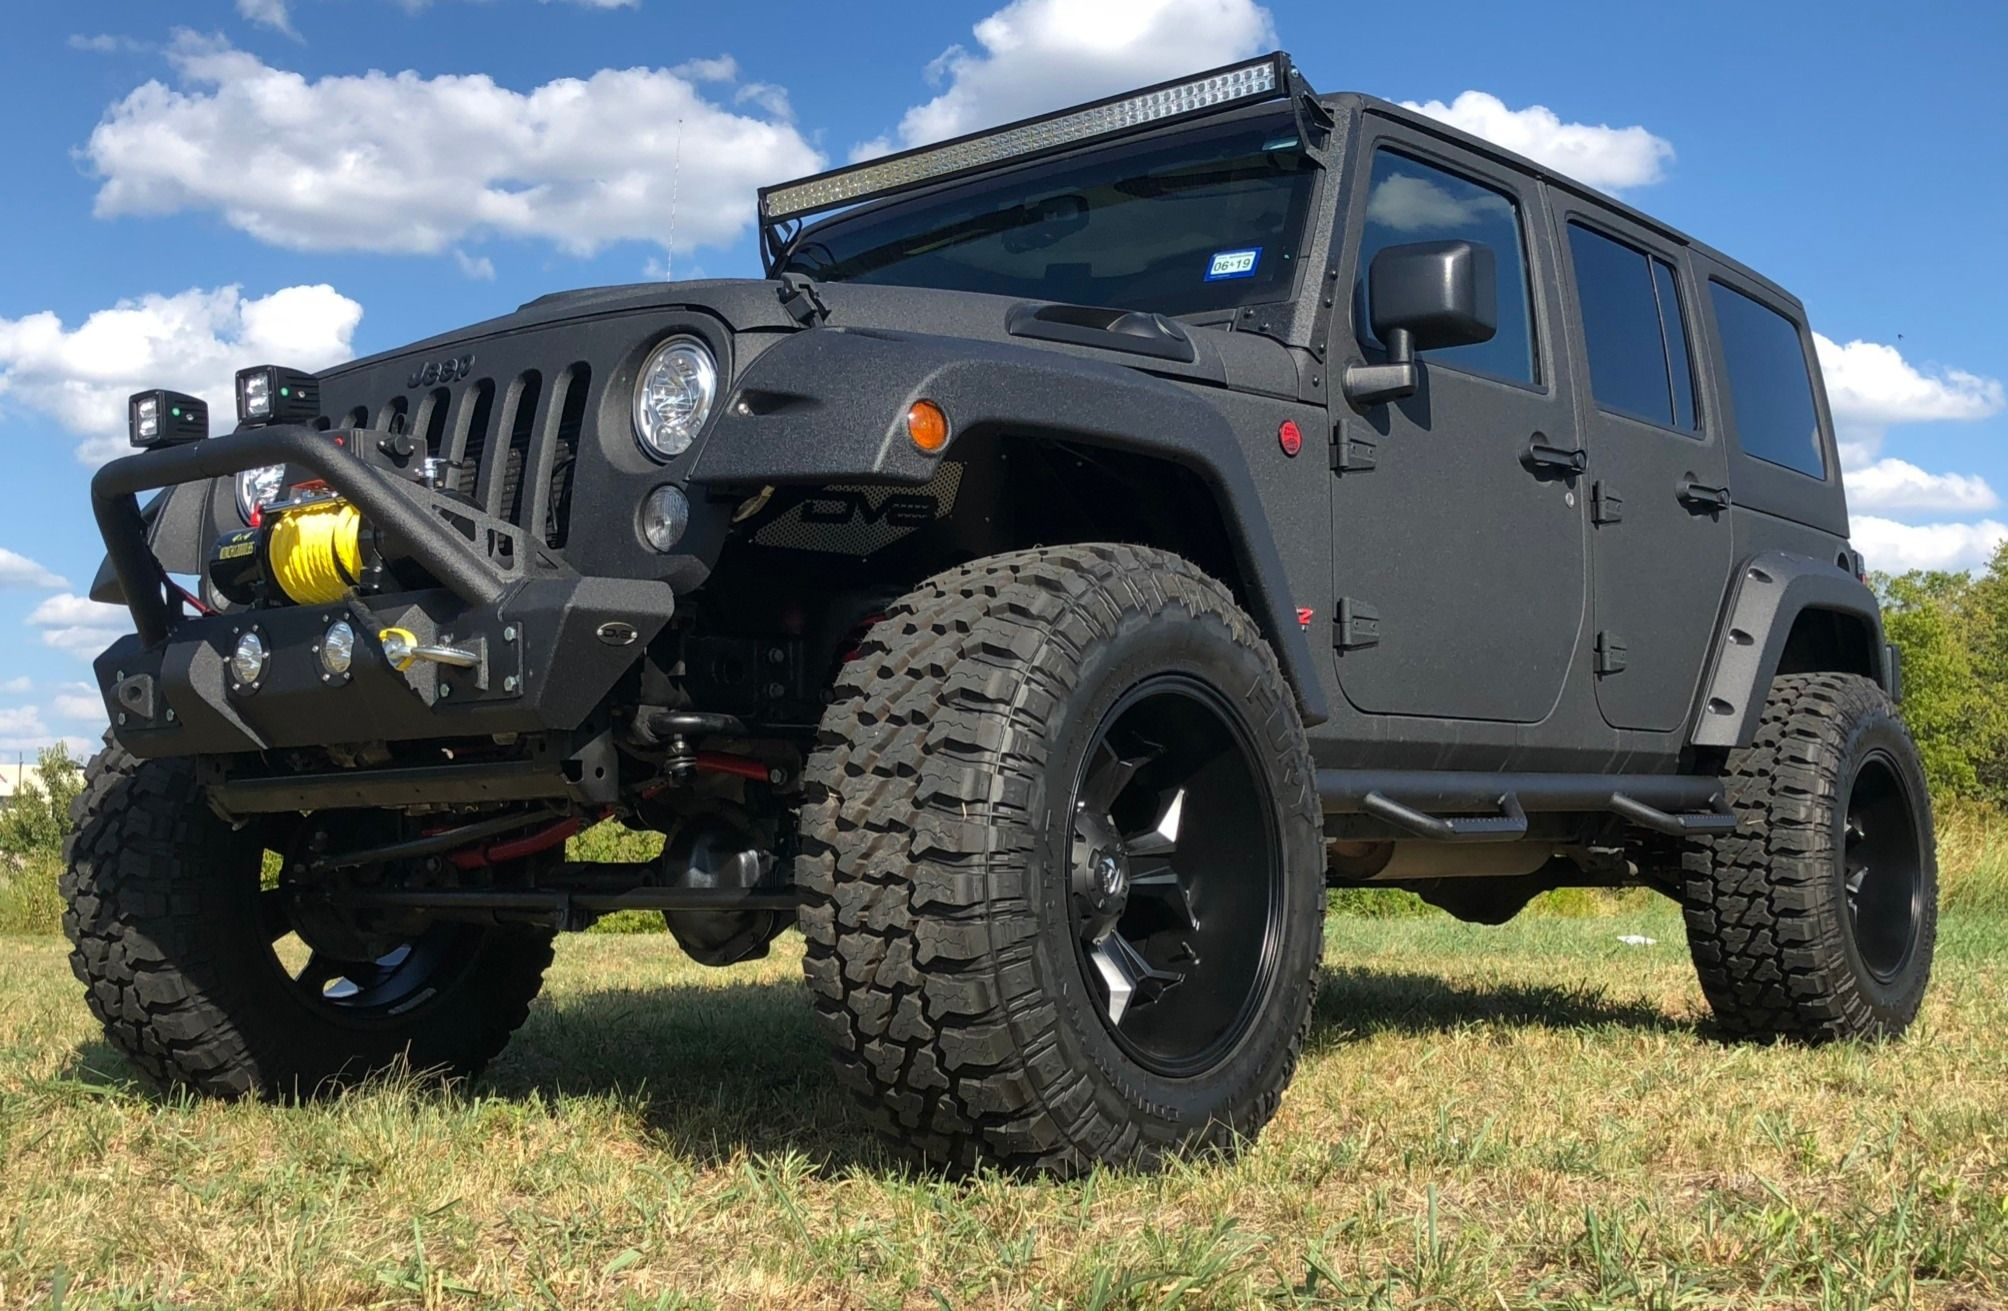 Hemi V8 Powered 2017 Jeep Wrangler Unlimited Rubicon Jeep